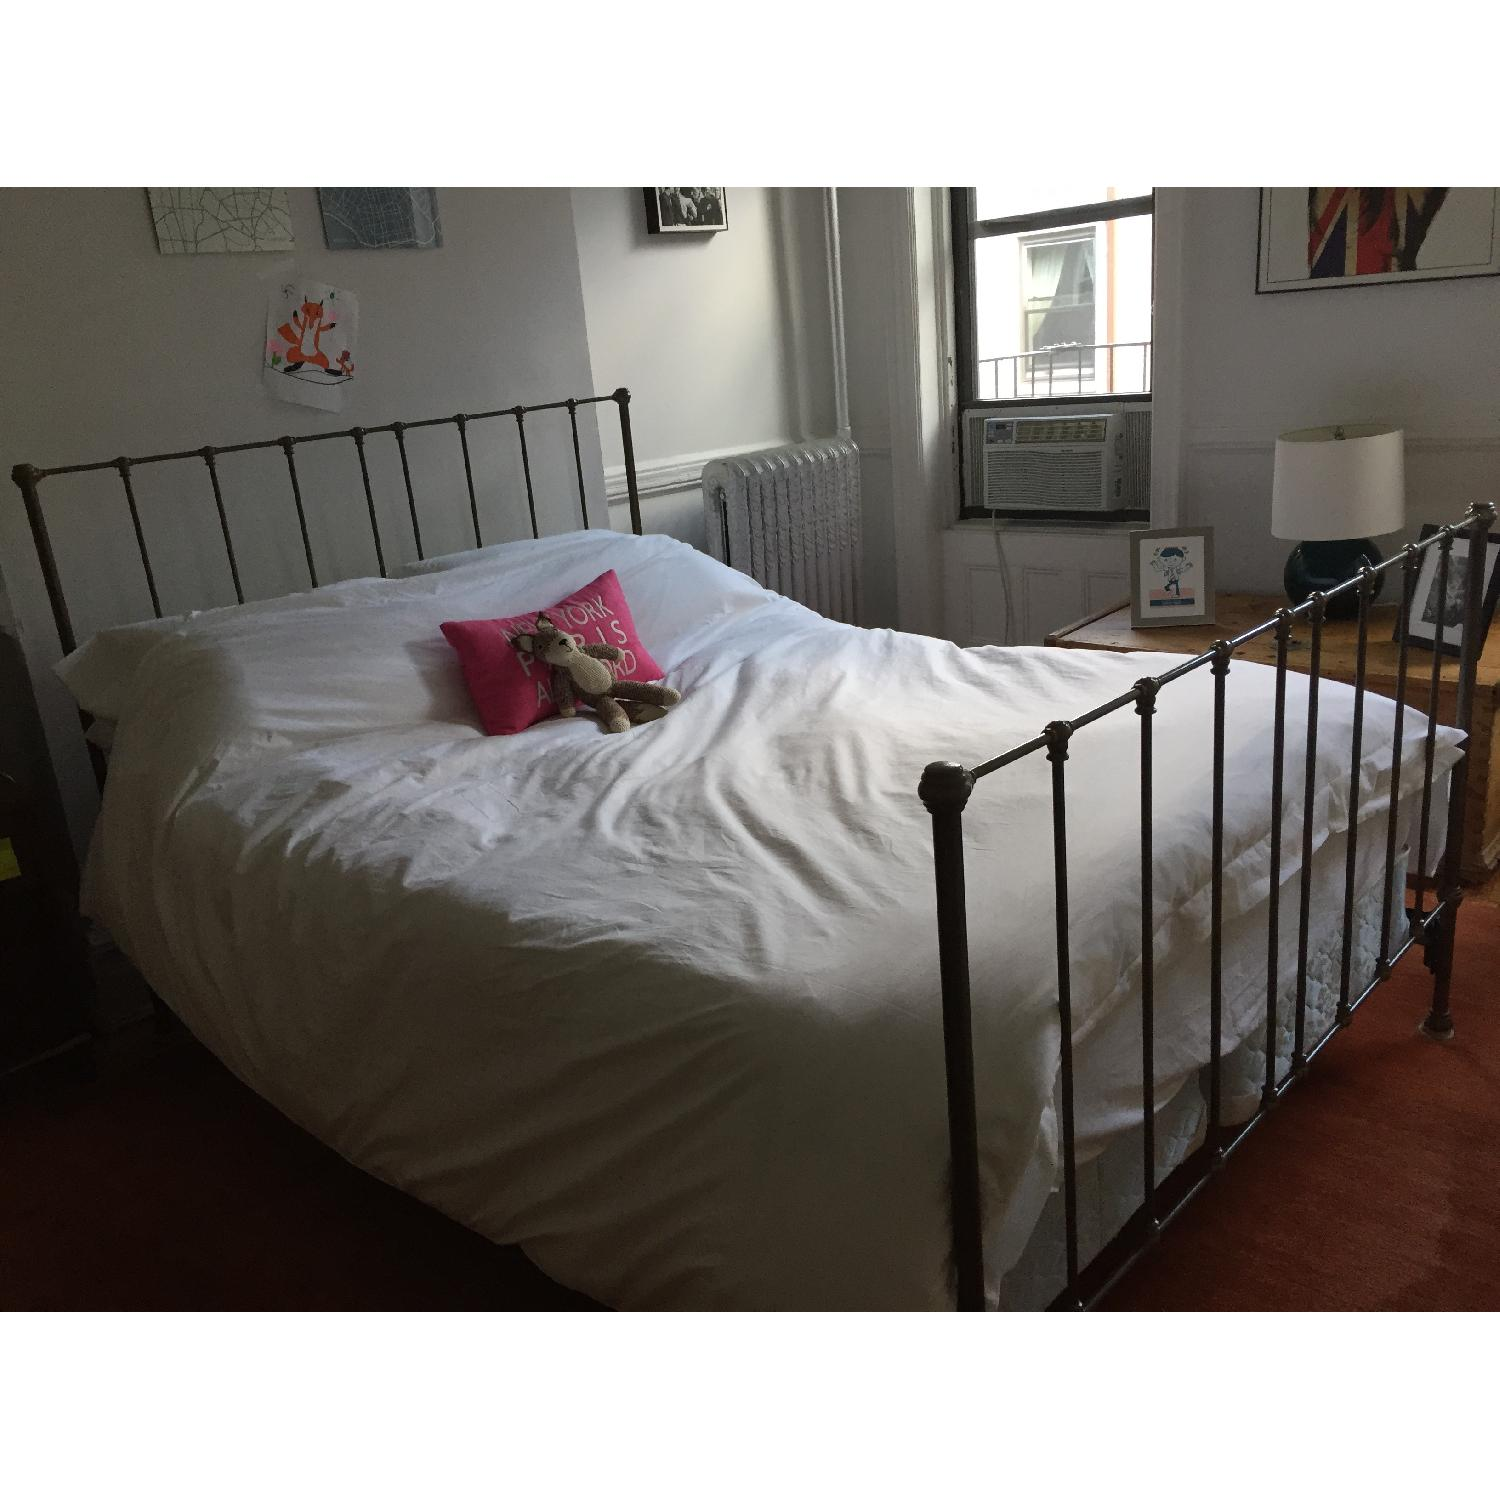 Queen Size Metal Bed Frame - image-1